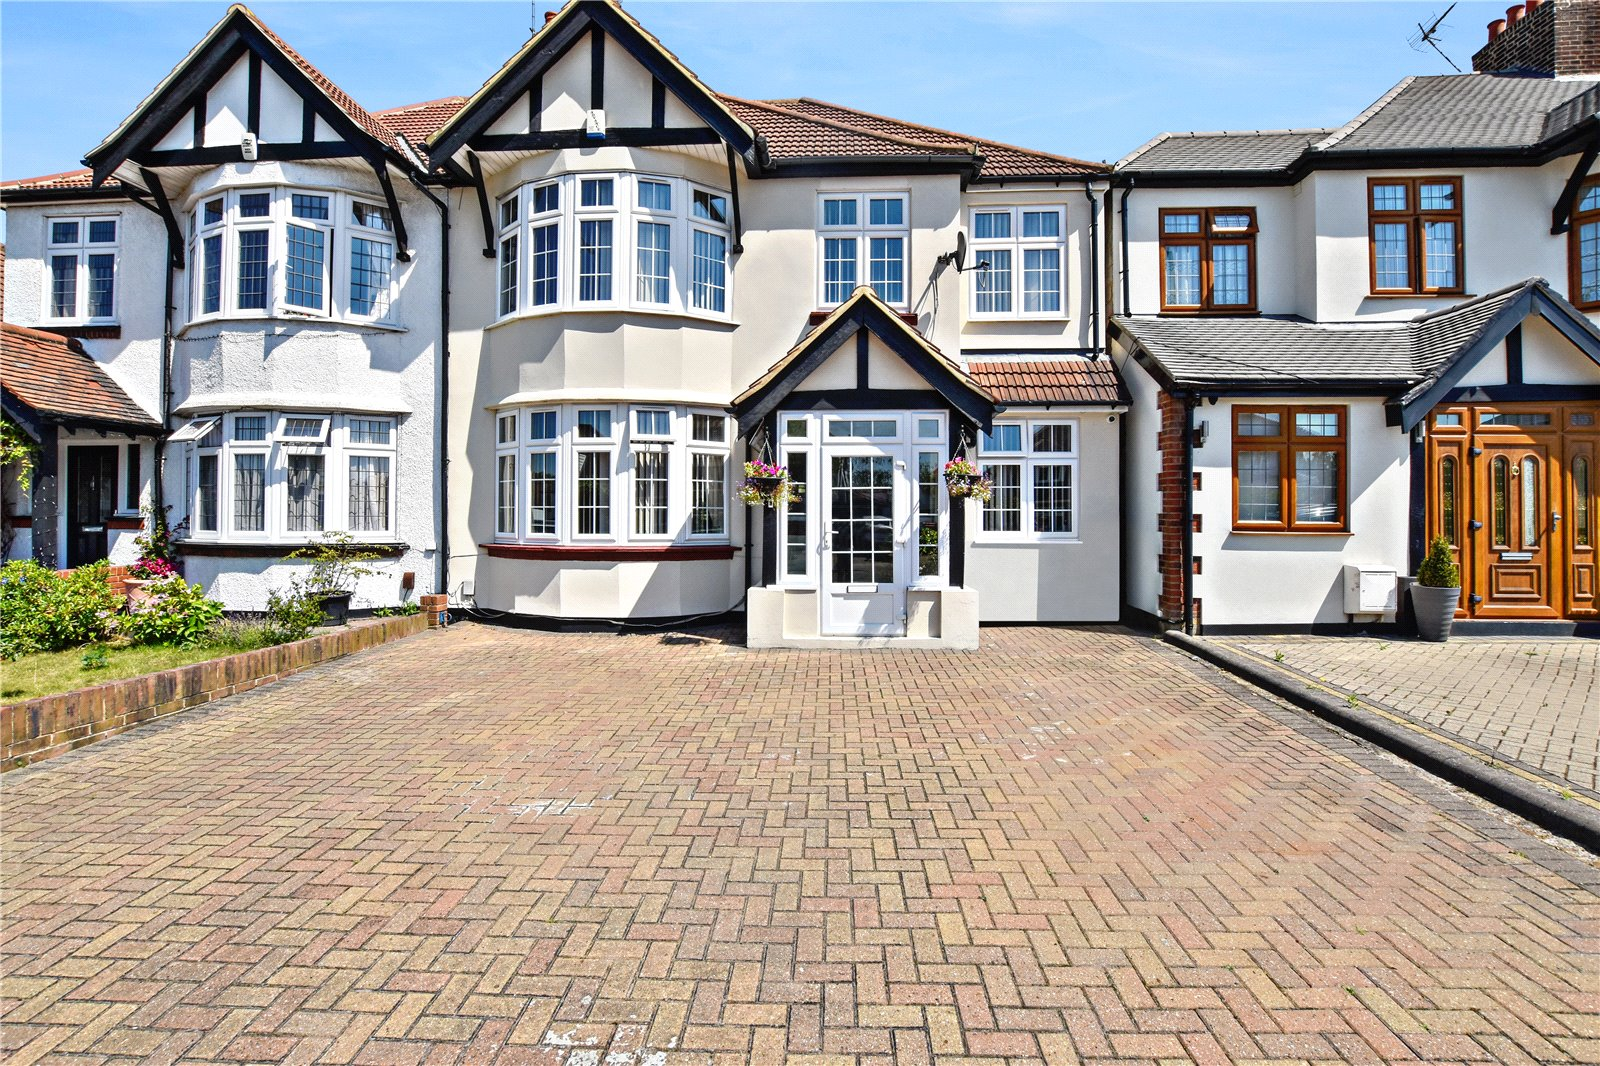 Upton Road, Bexleyheath, DA6